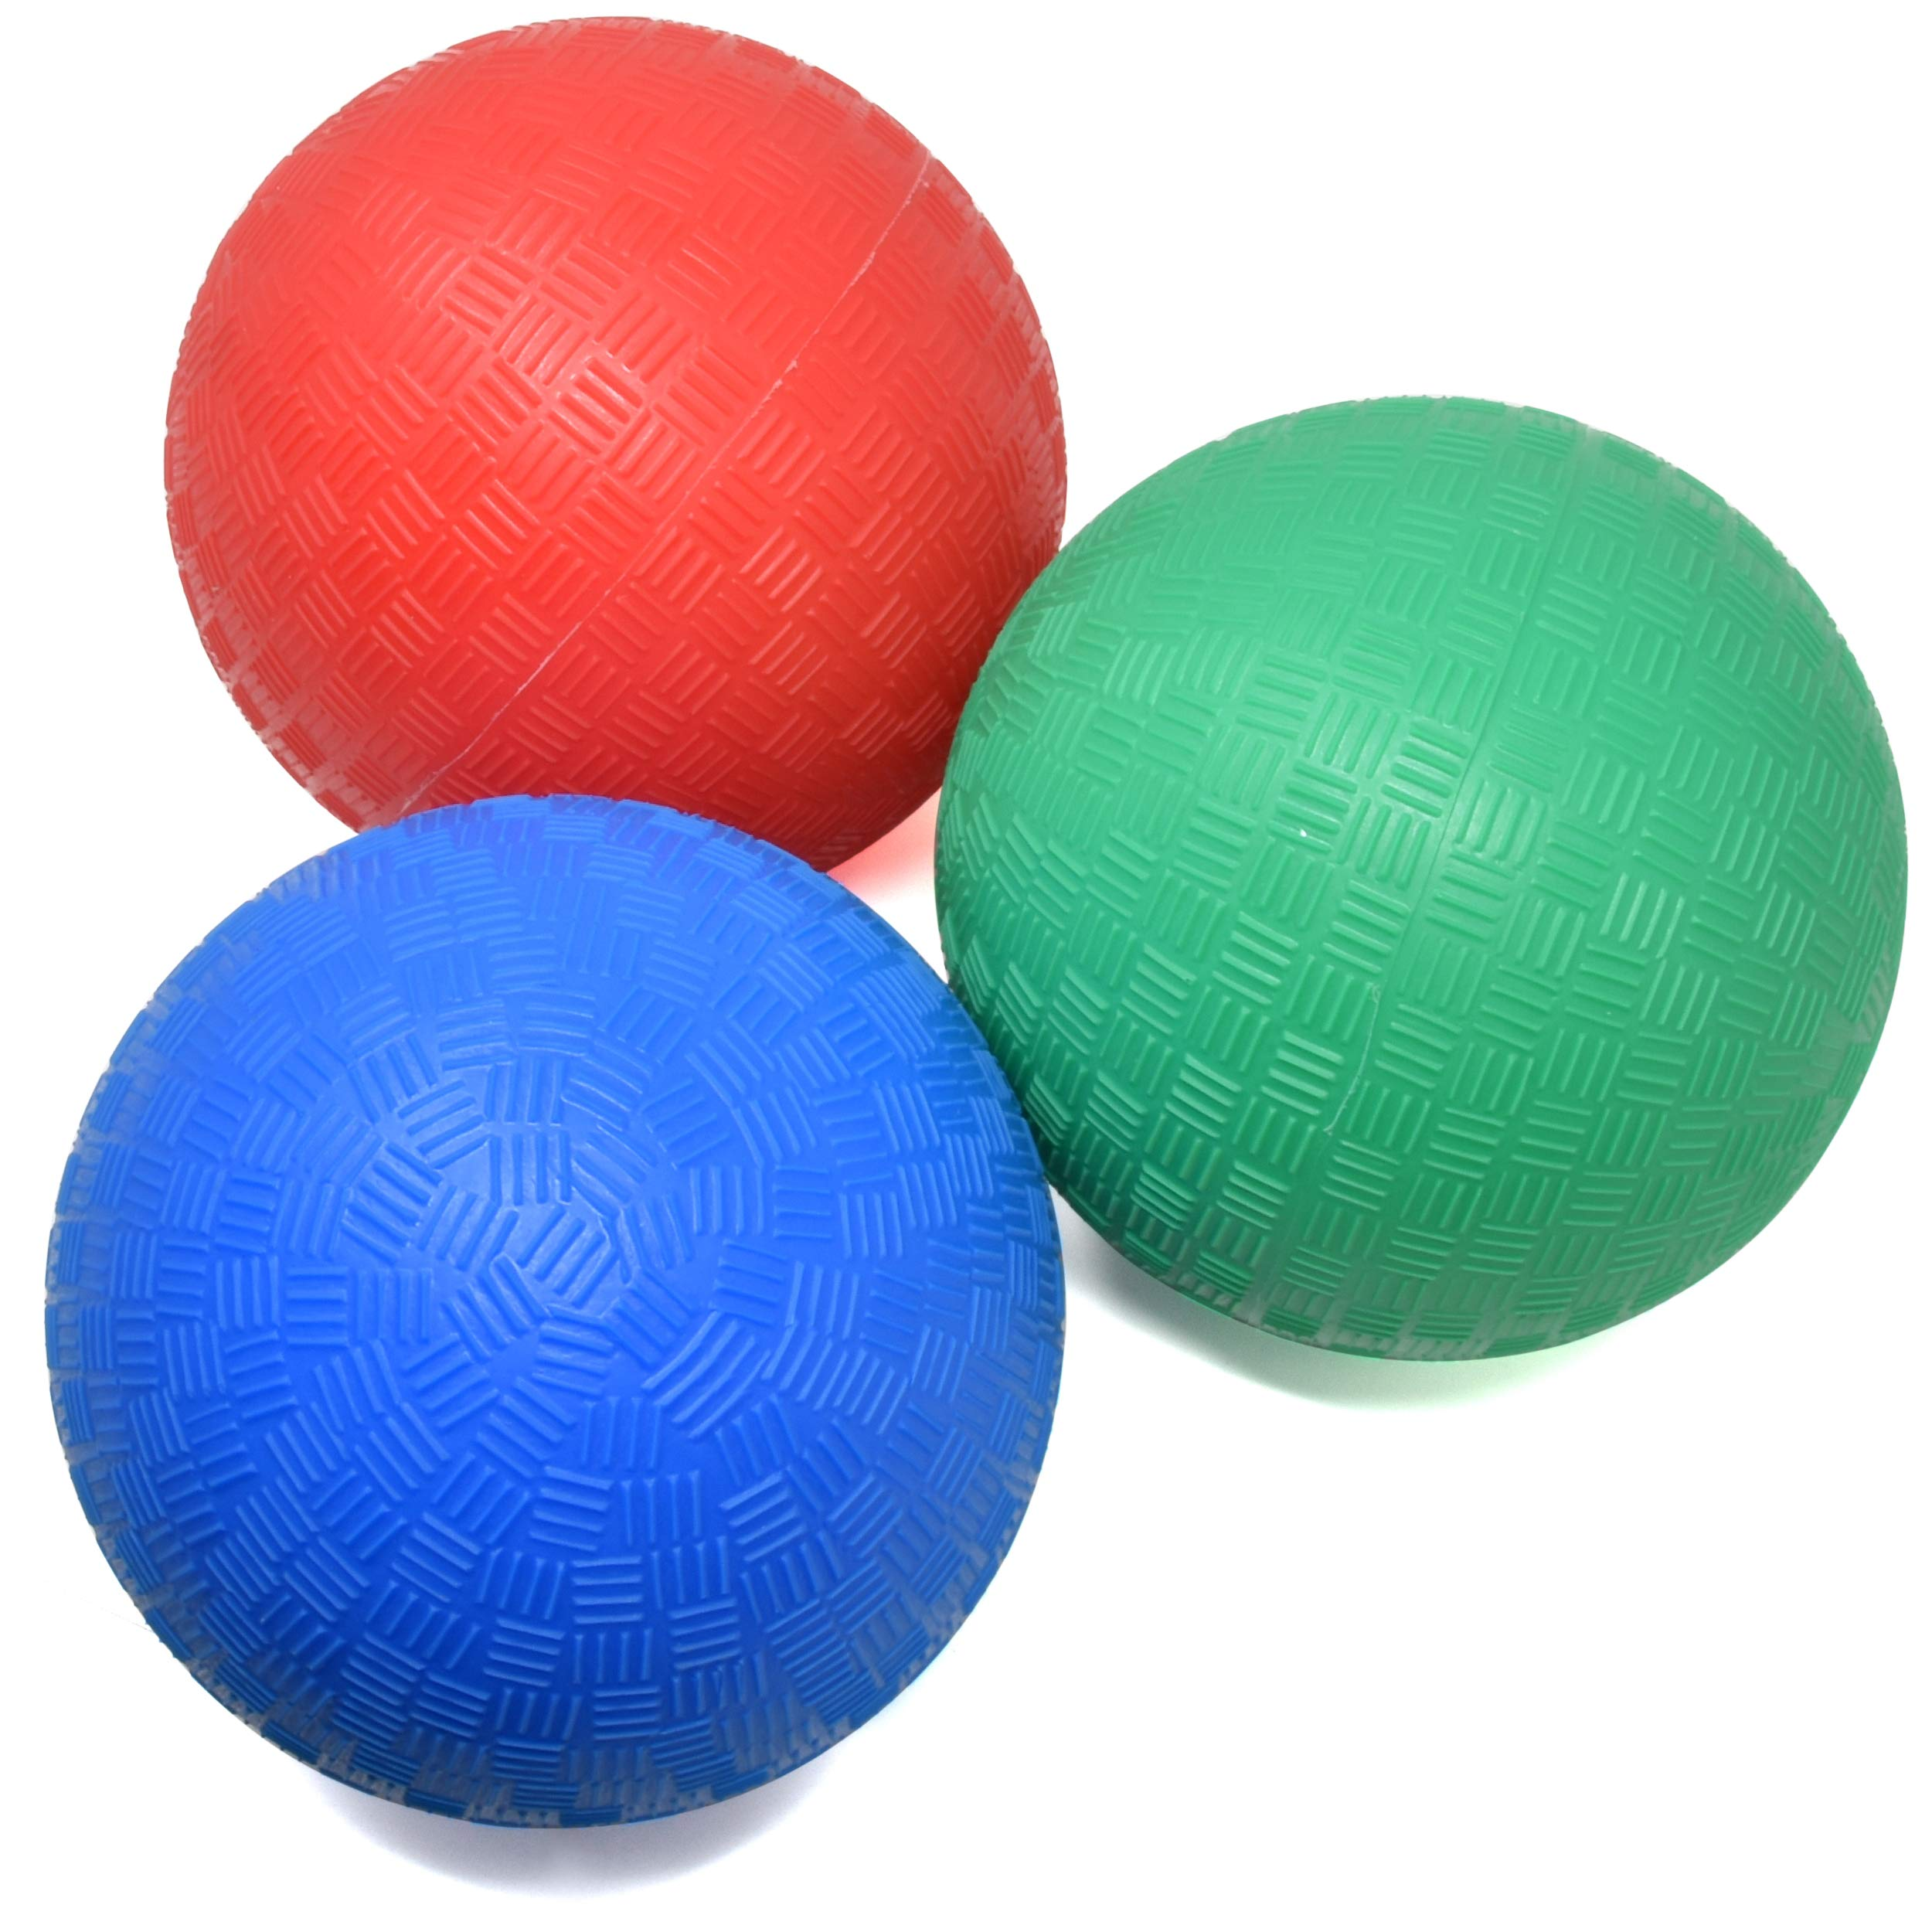 Number 1 in Gadgets 5 Inch Playground Balls, Set of 3 Mini Sports Balls for Soft Play, Rubber Dodge Balls for Indoor and Outdoor Use, Inflated Bouncy Easy Grip for Kids and Toddlers by Number 1 in Gadgets